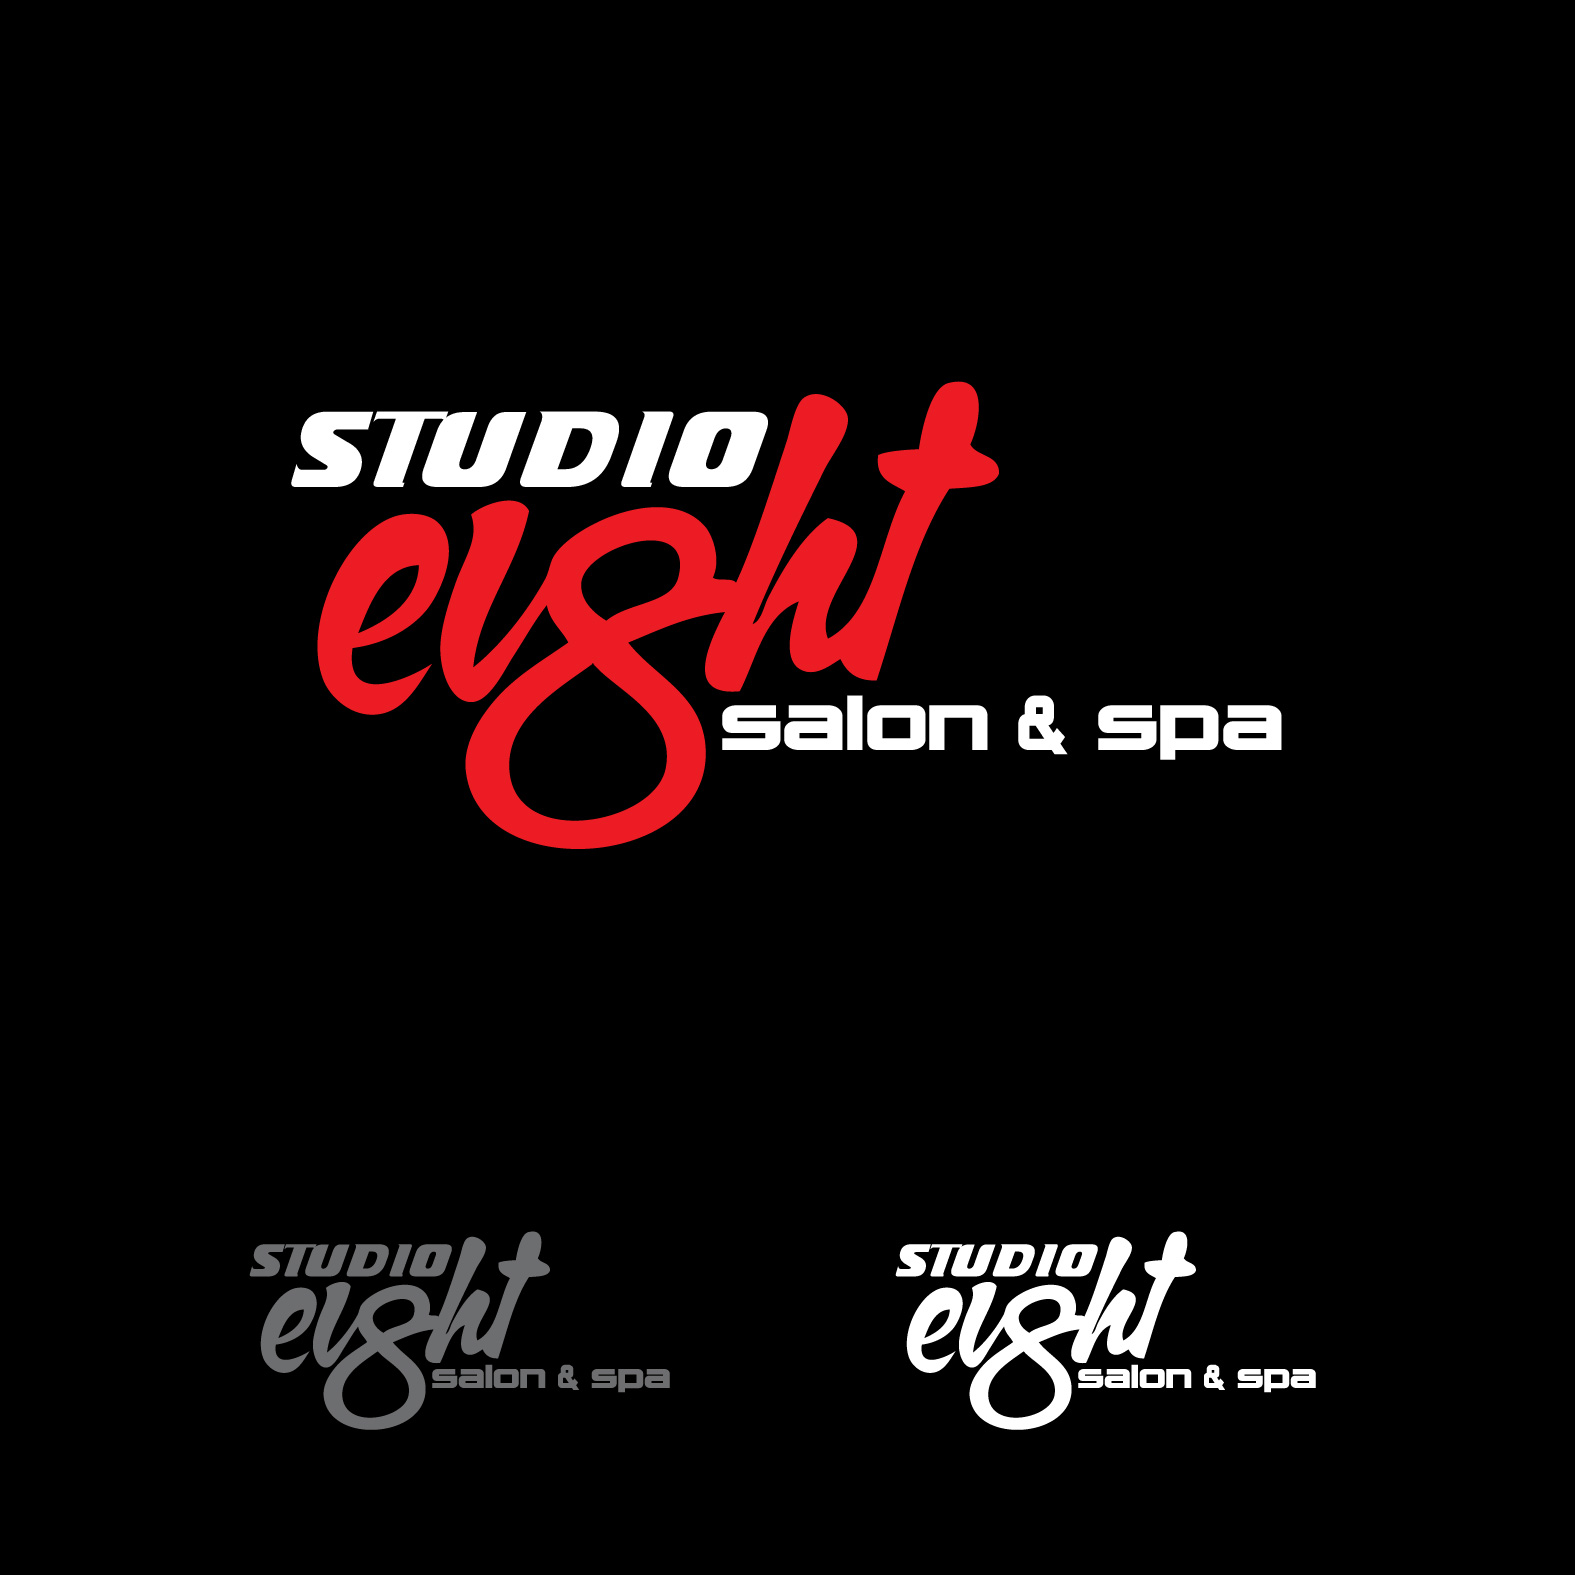 Logo Design by lagalag - Entry No. 65 in the Logo Design Contest Captivating Logo Design for studio eight salon & spa.